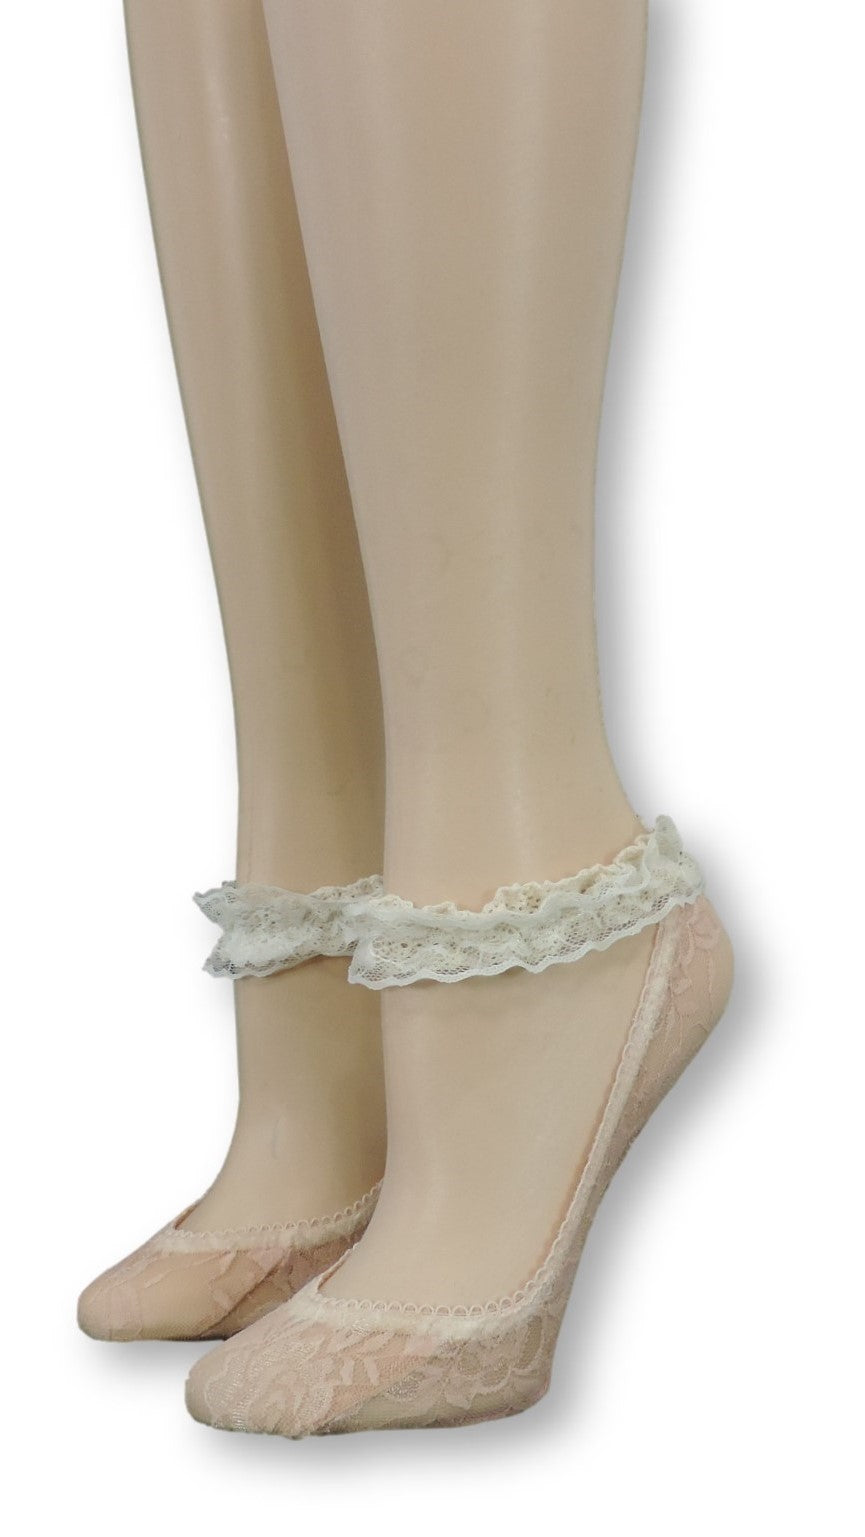 Peach Ankle Sheer Socks with Antique Lace - Global Trendz Fashion®